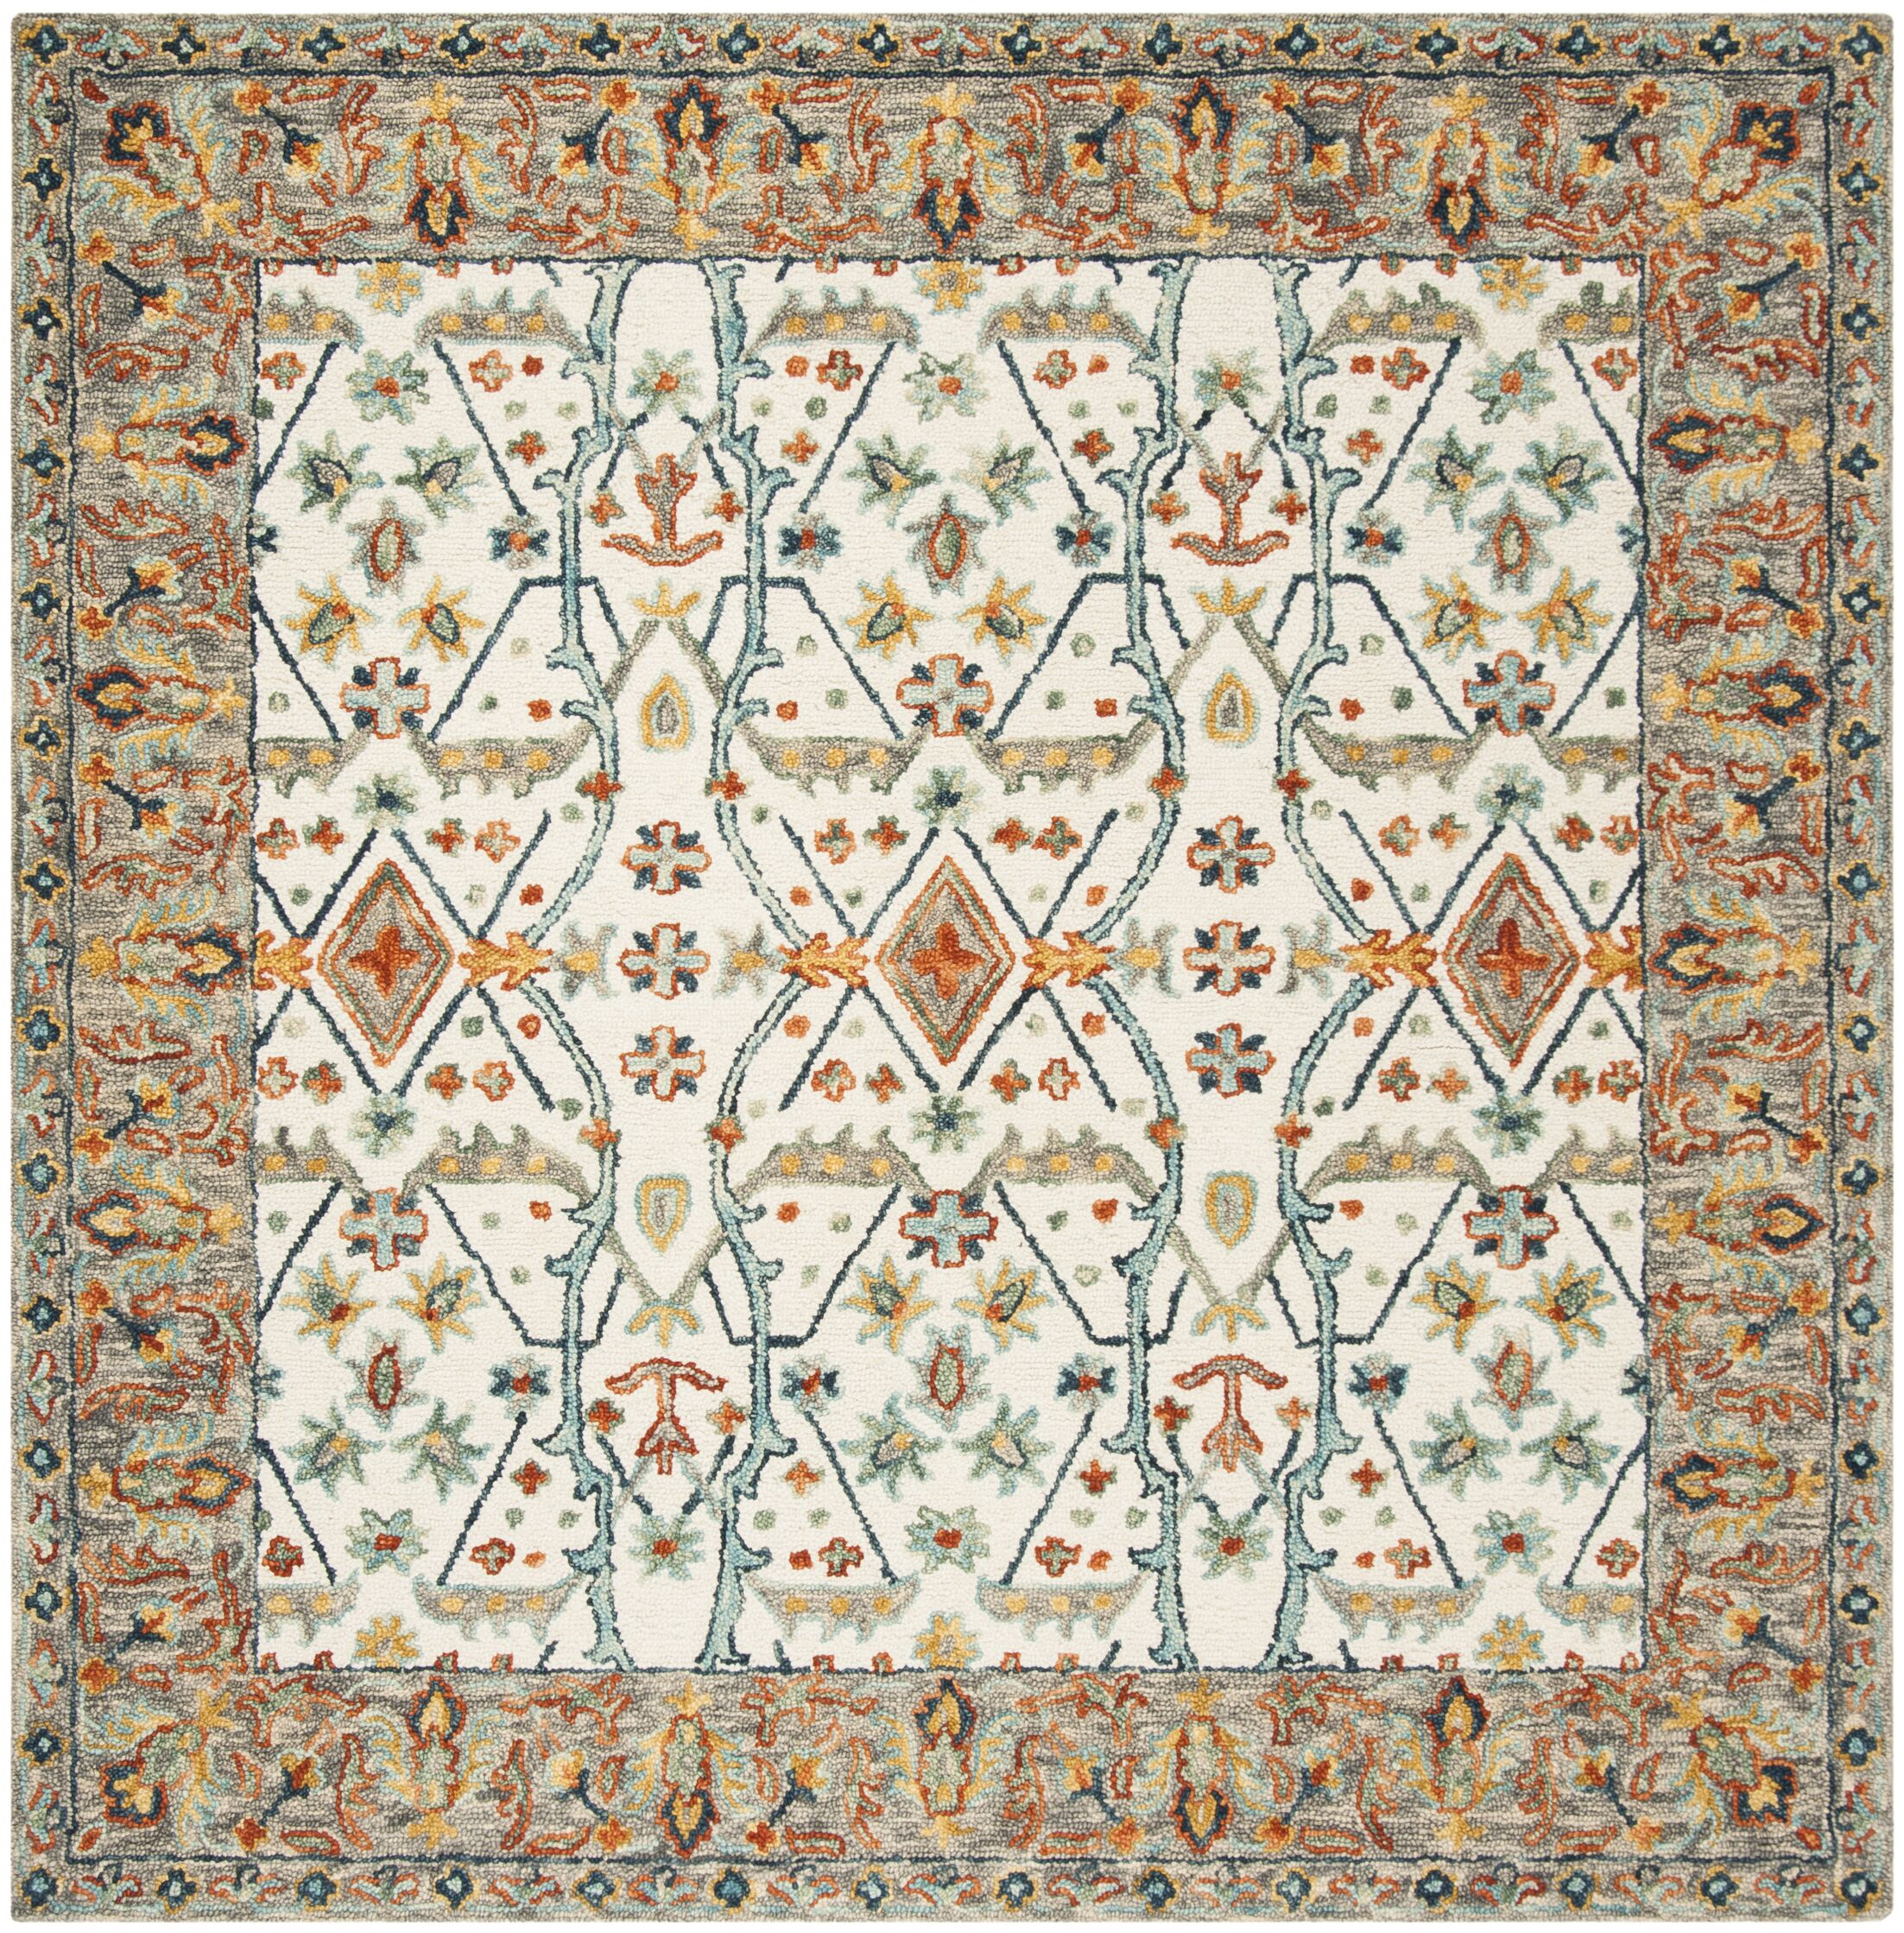 Garvin Hand-Tufted Wool Ivory/Blue Area Rug Rug Size: Square 7'